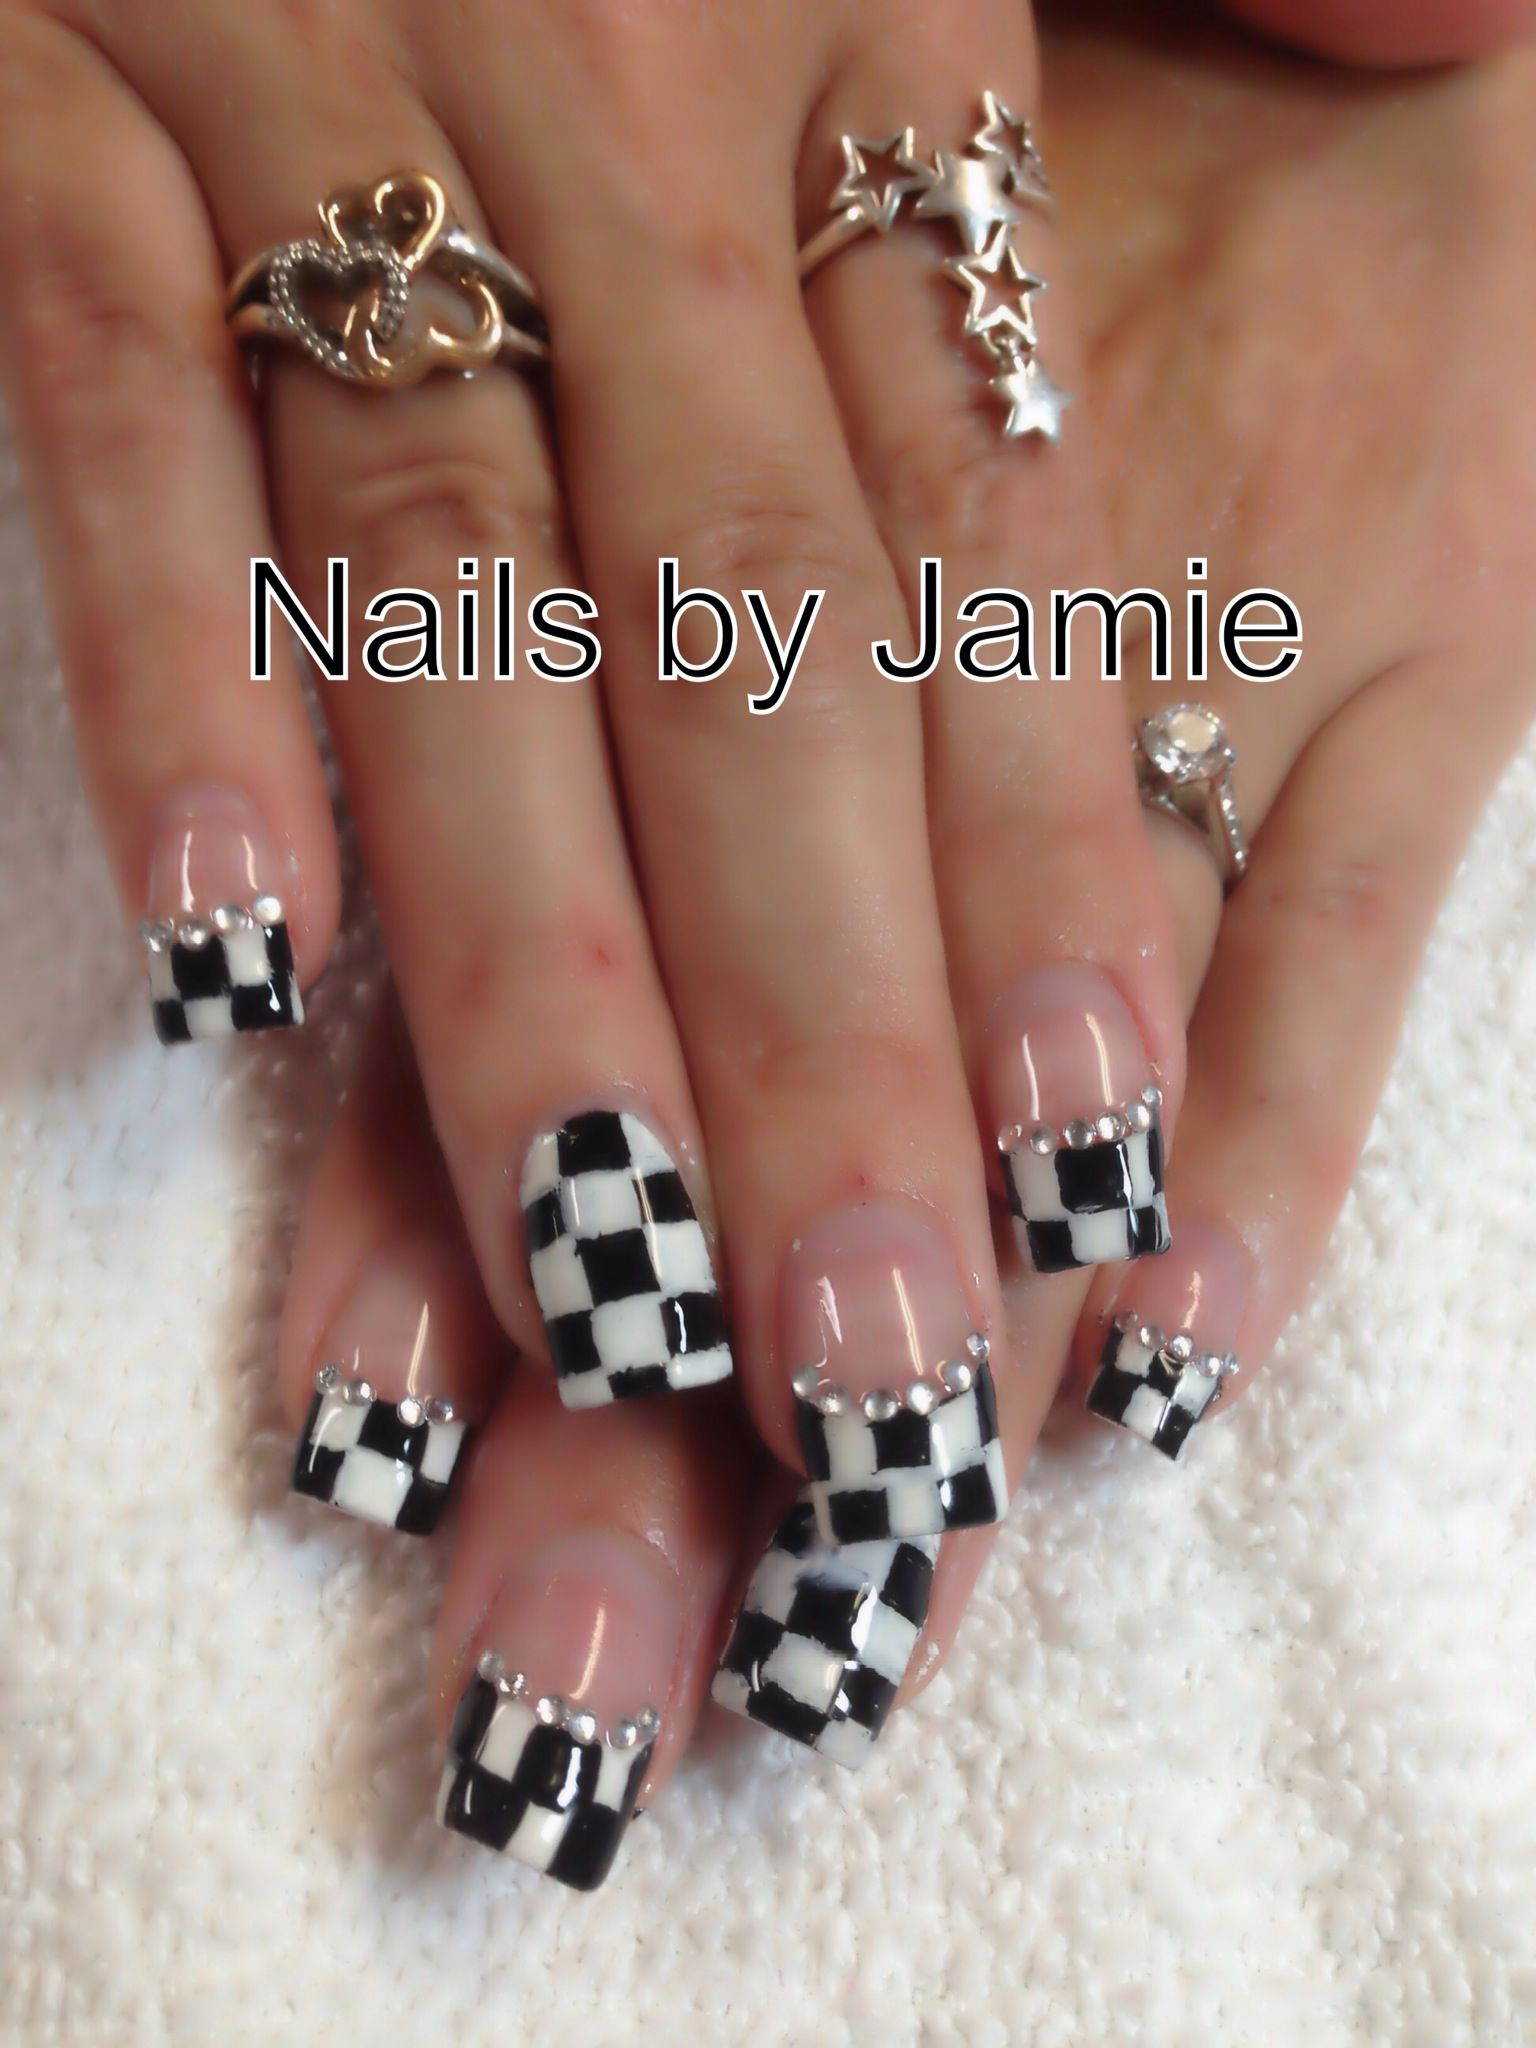 Checkered Flag Nails By Jamie Duffield Eugene Oregon 541 541 556 8337 To Book An Appointment Go To Www Styleseat Com Jamieduf Racing Nails Flag Nails Nails